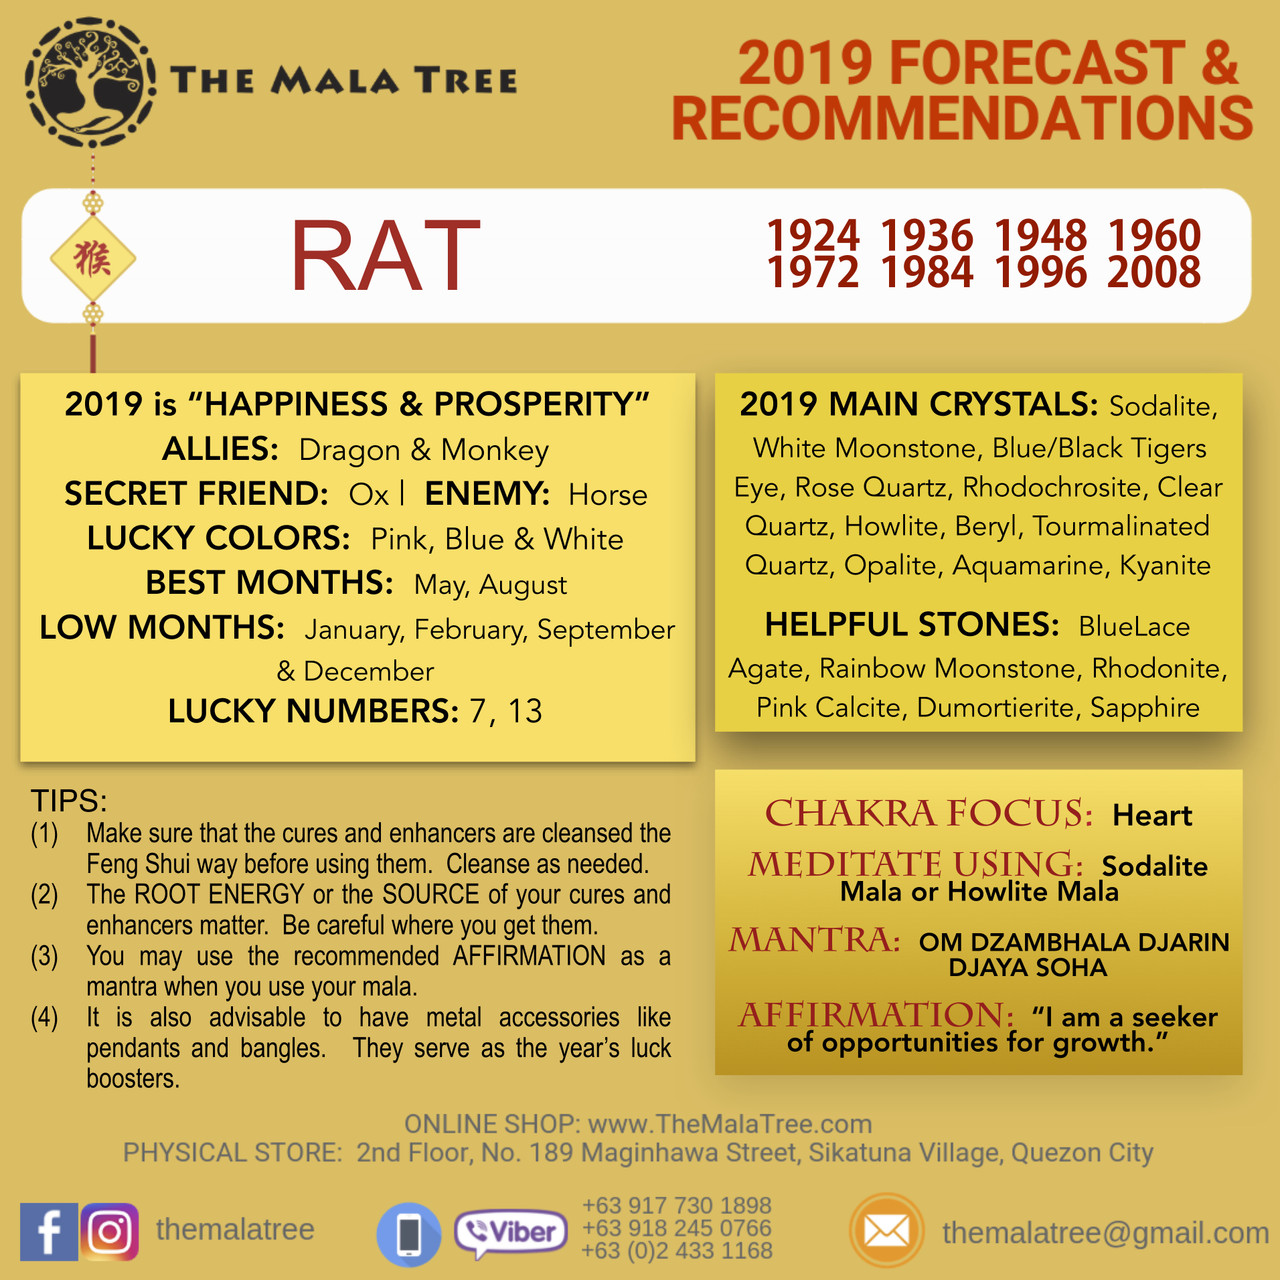 2019 Year of the Rat